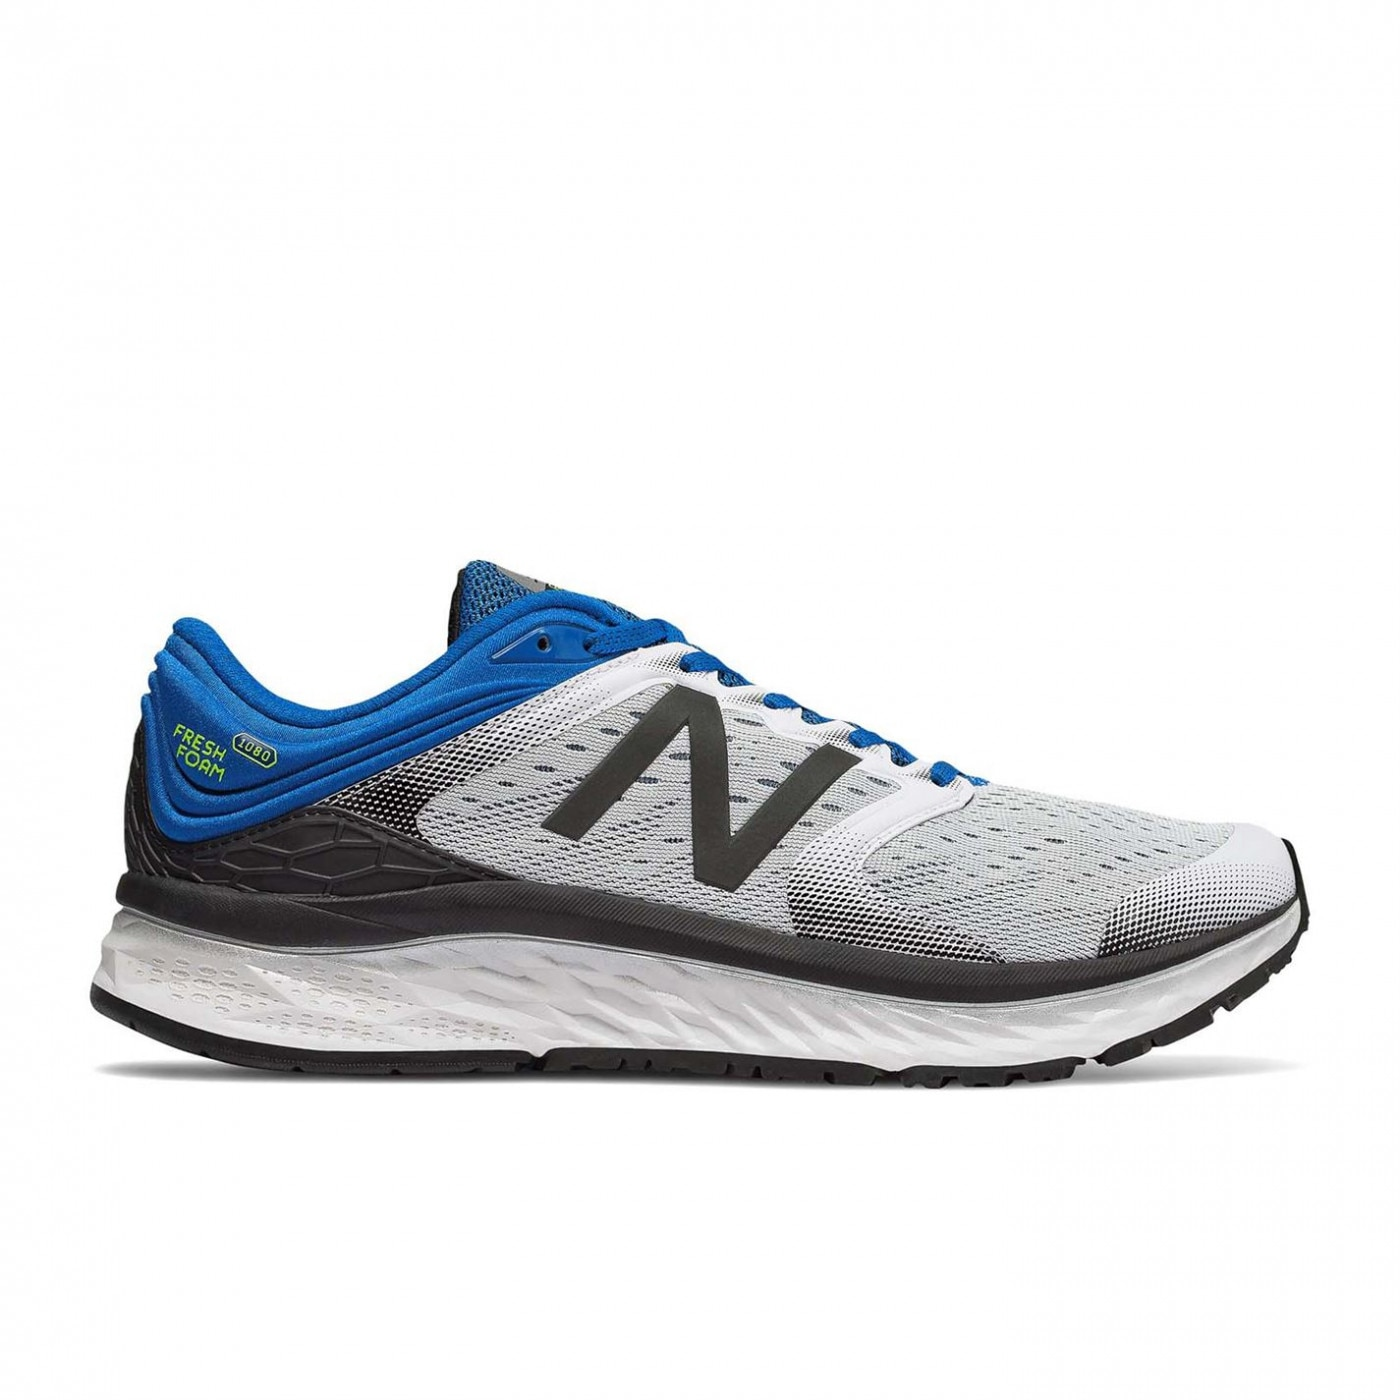 New Balance 1080 v8 Mens Running Shoes